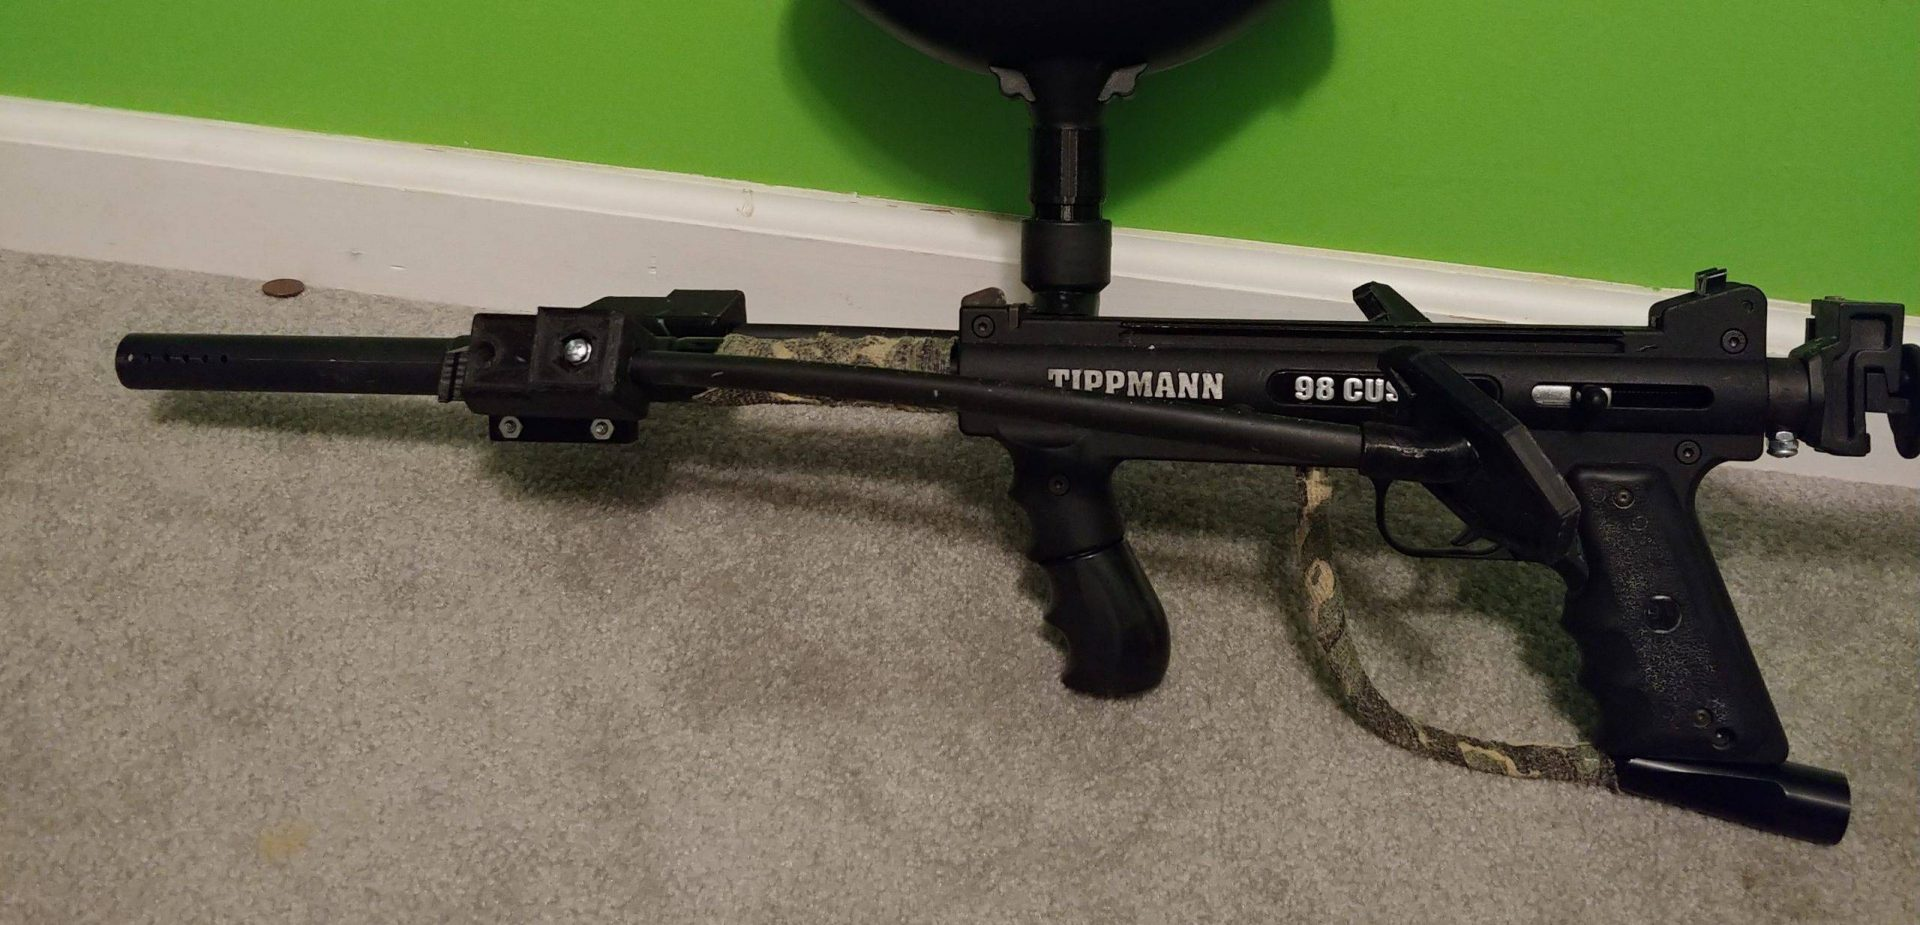 Paintball Gun attached with a bipod